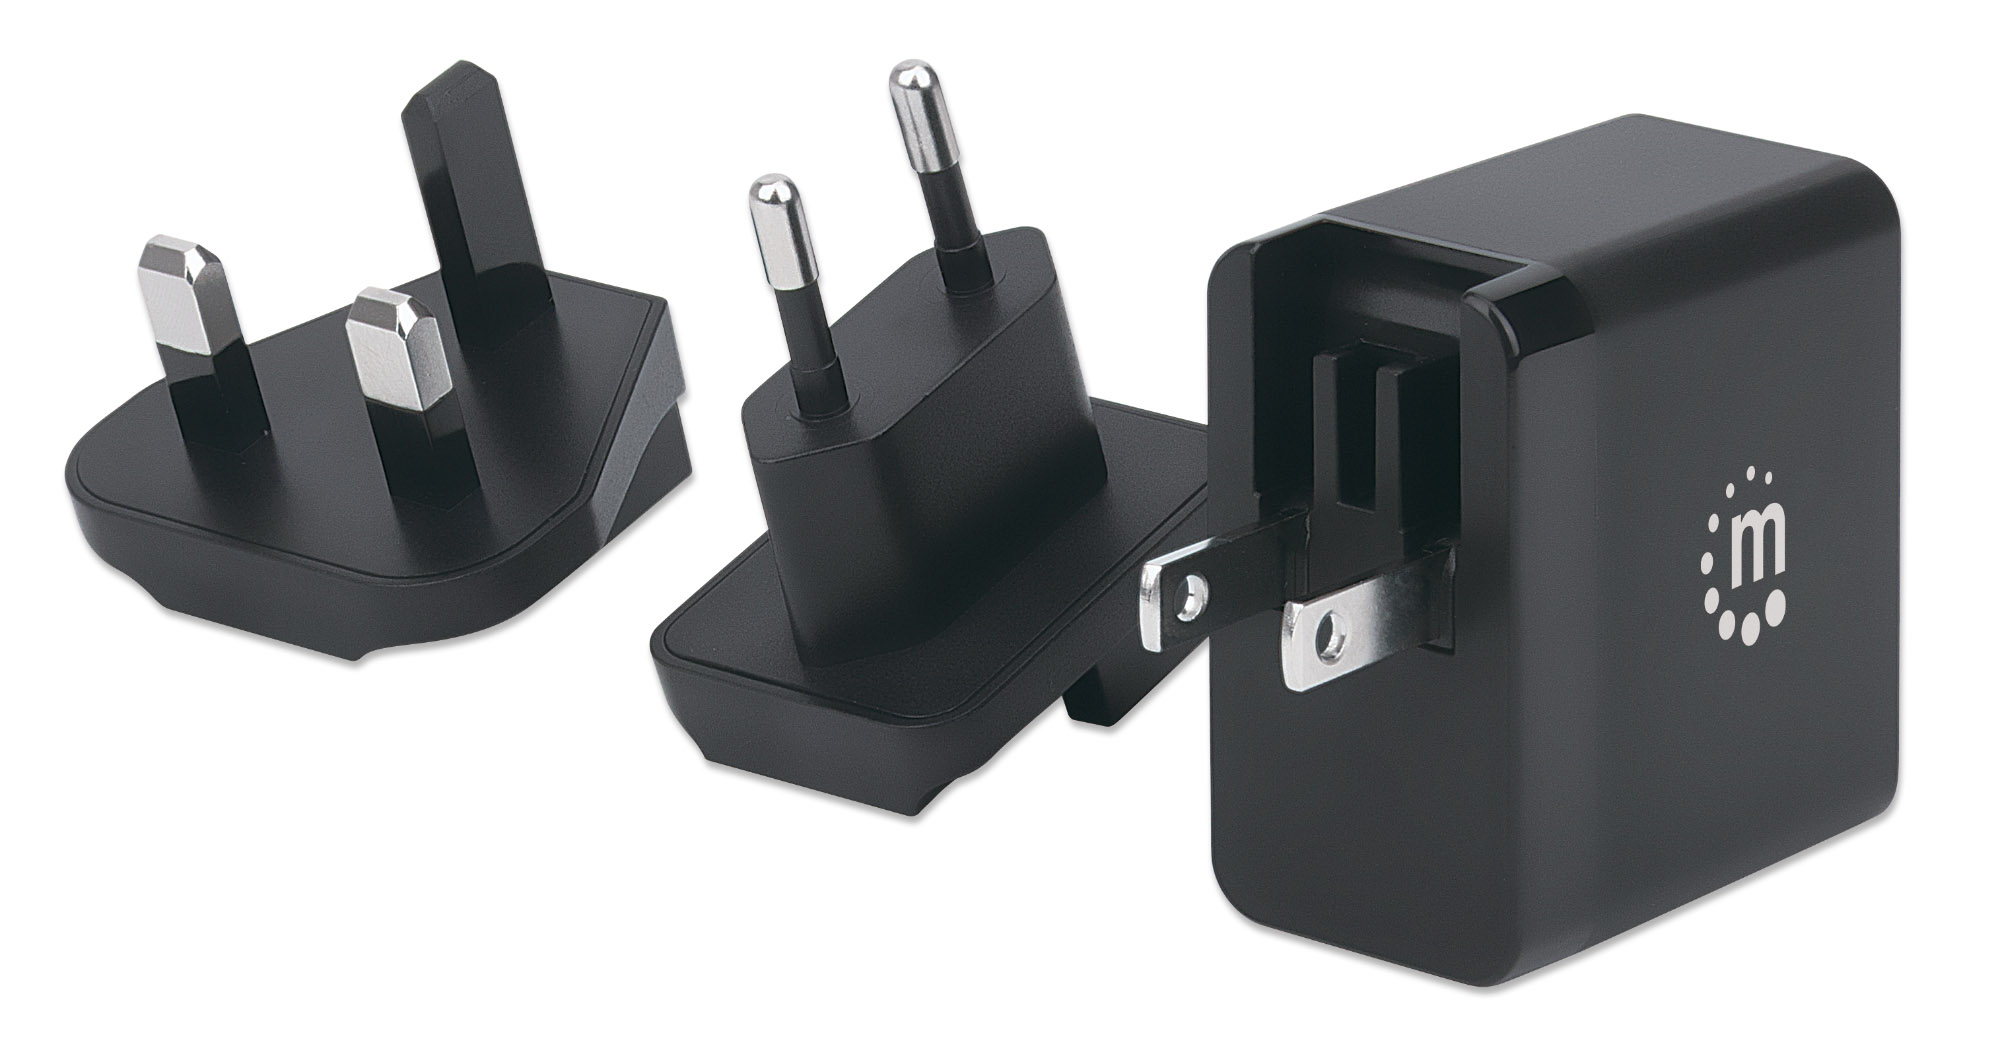 GaN Tech Power Delivery Wall Charger - 65 W